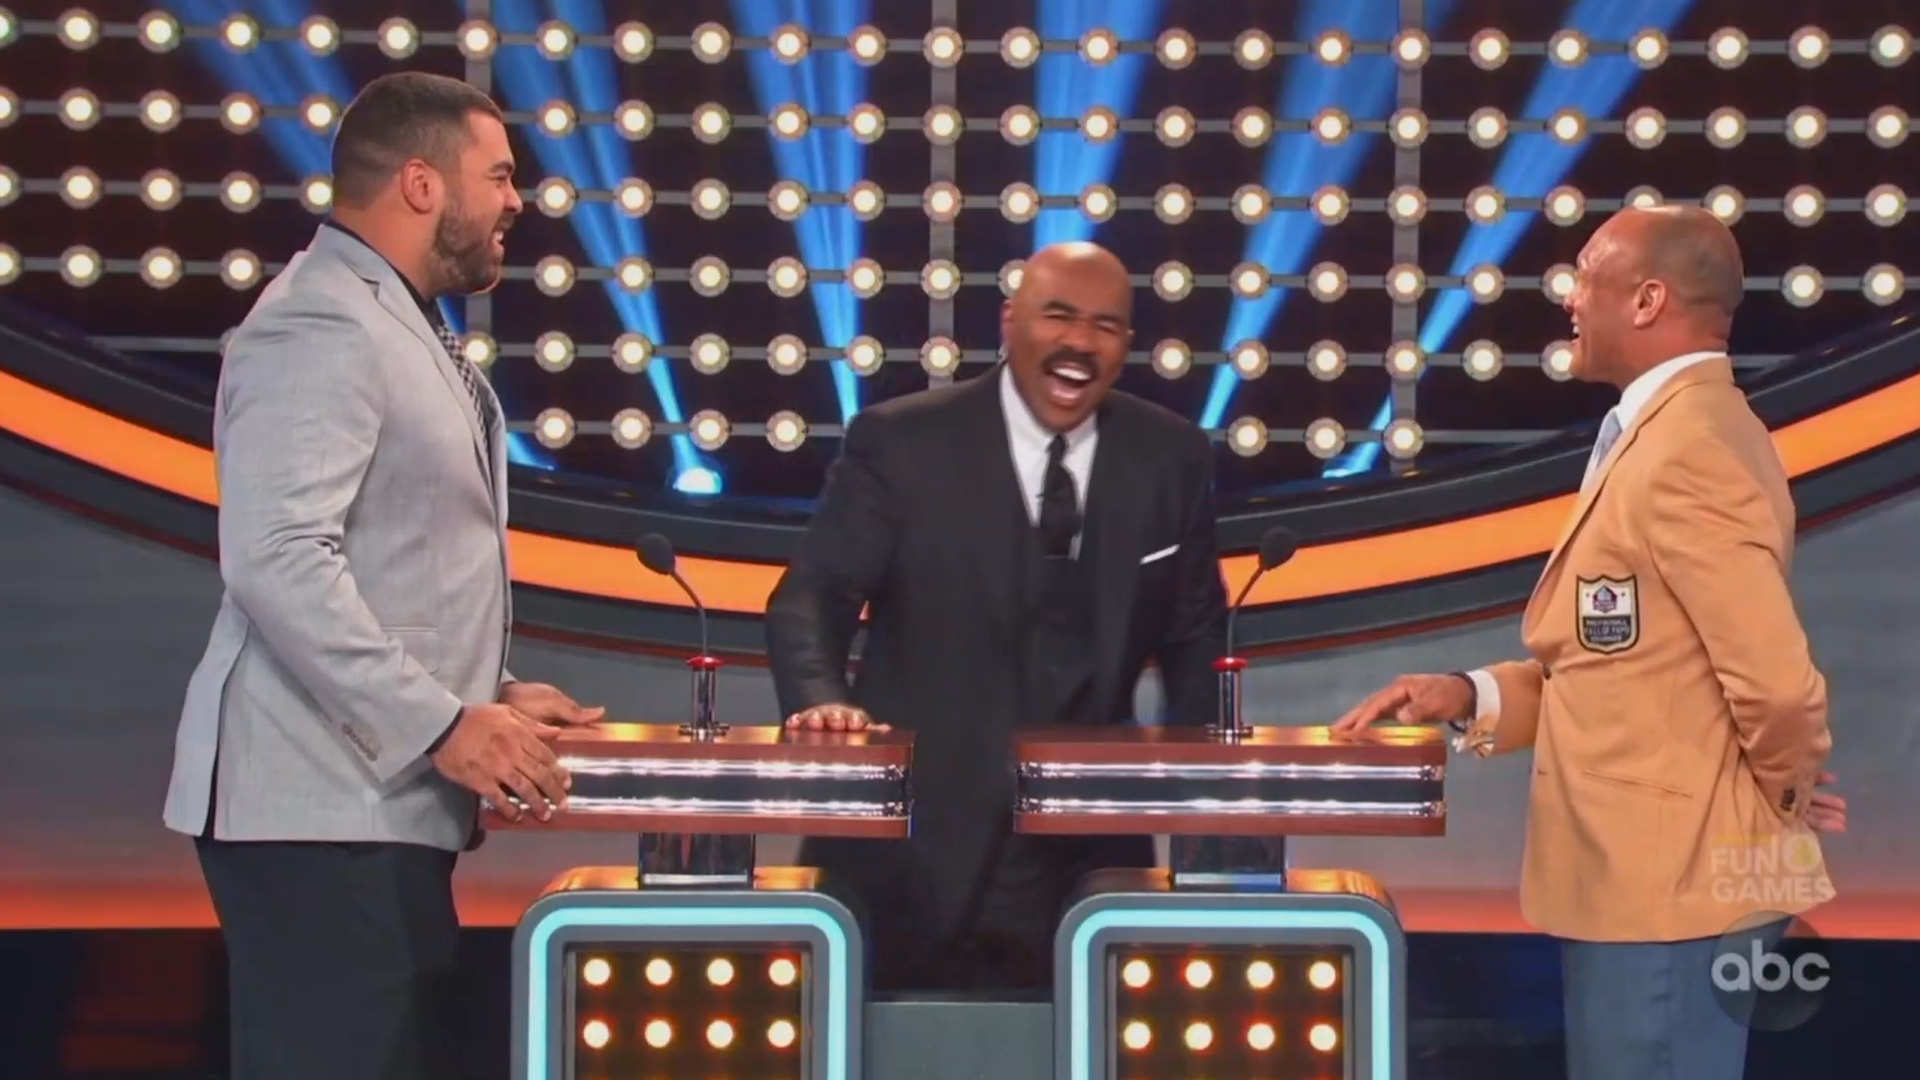 'Strip club' question causes NFL players to hesitate on 'Celebrity Family Feud'